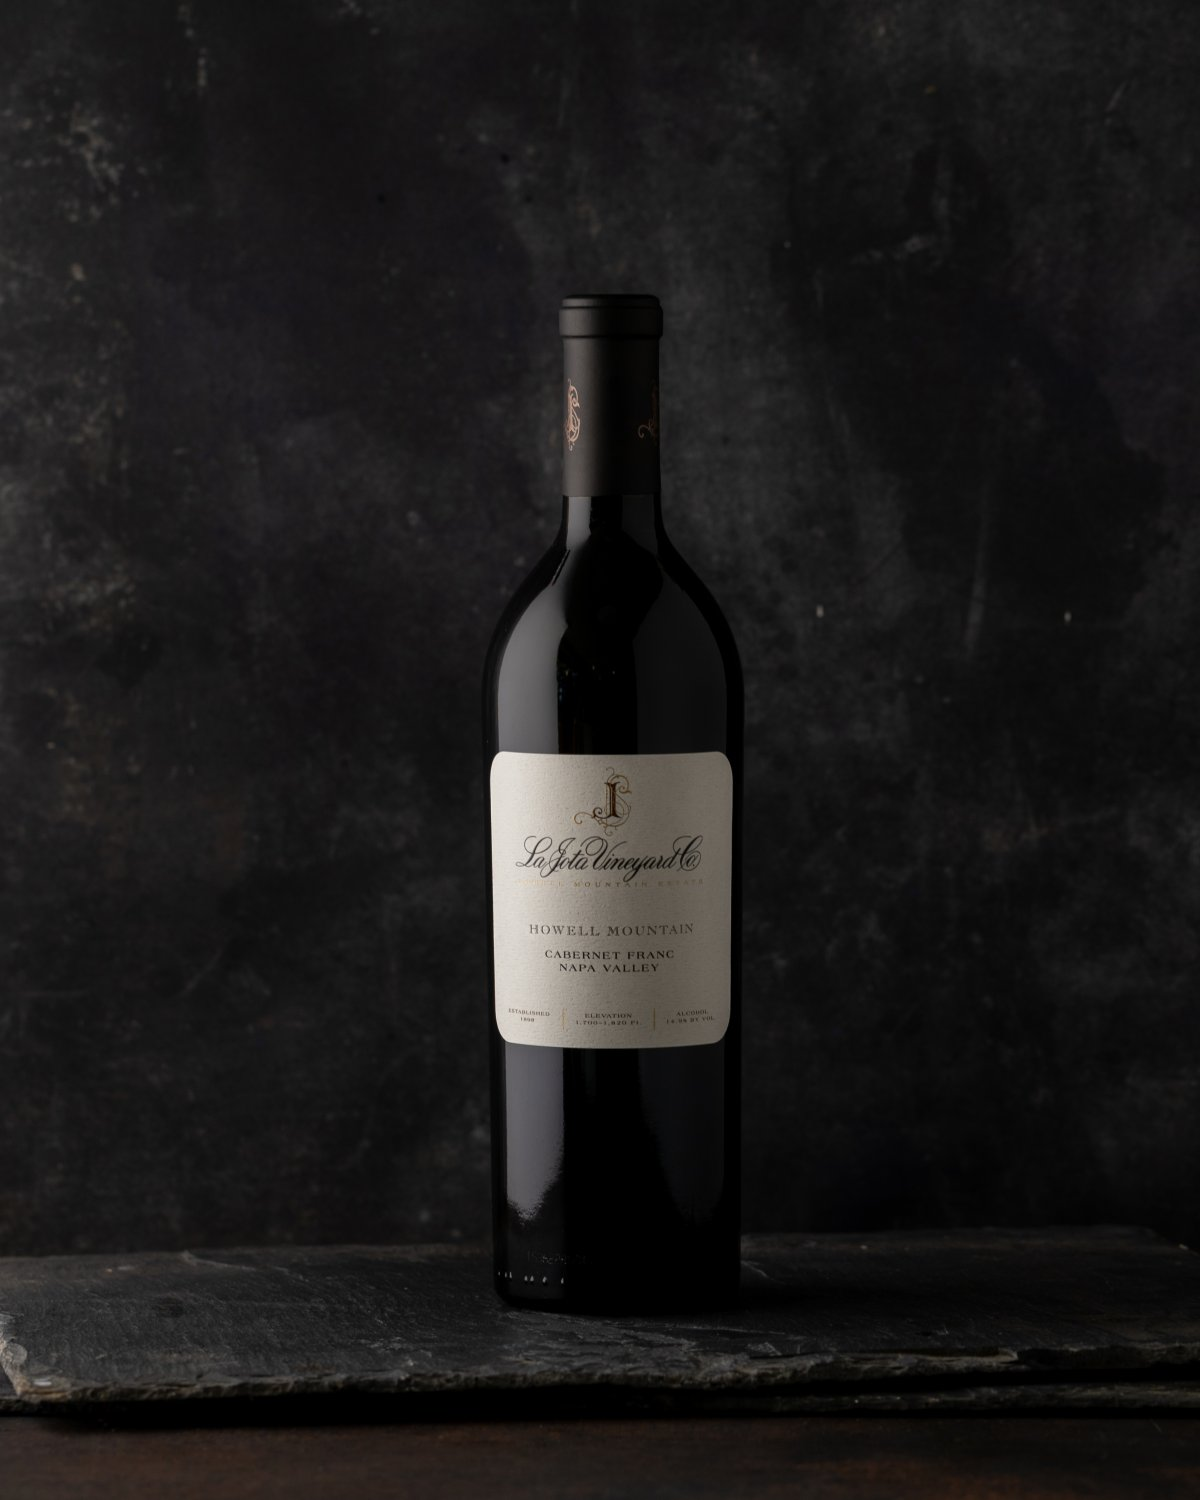 2015 La Jota Vineryard Co Howell Mountain Cabernet Franc